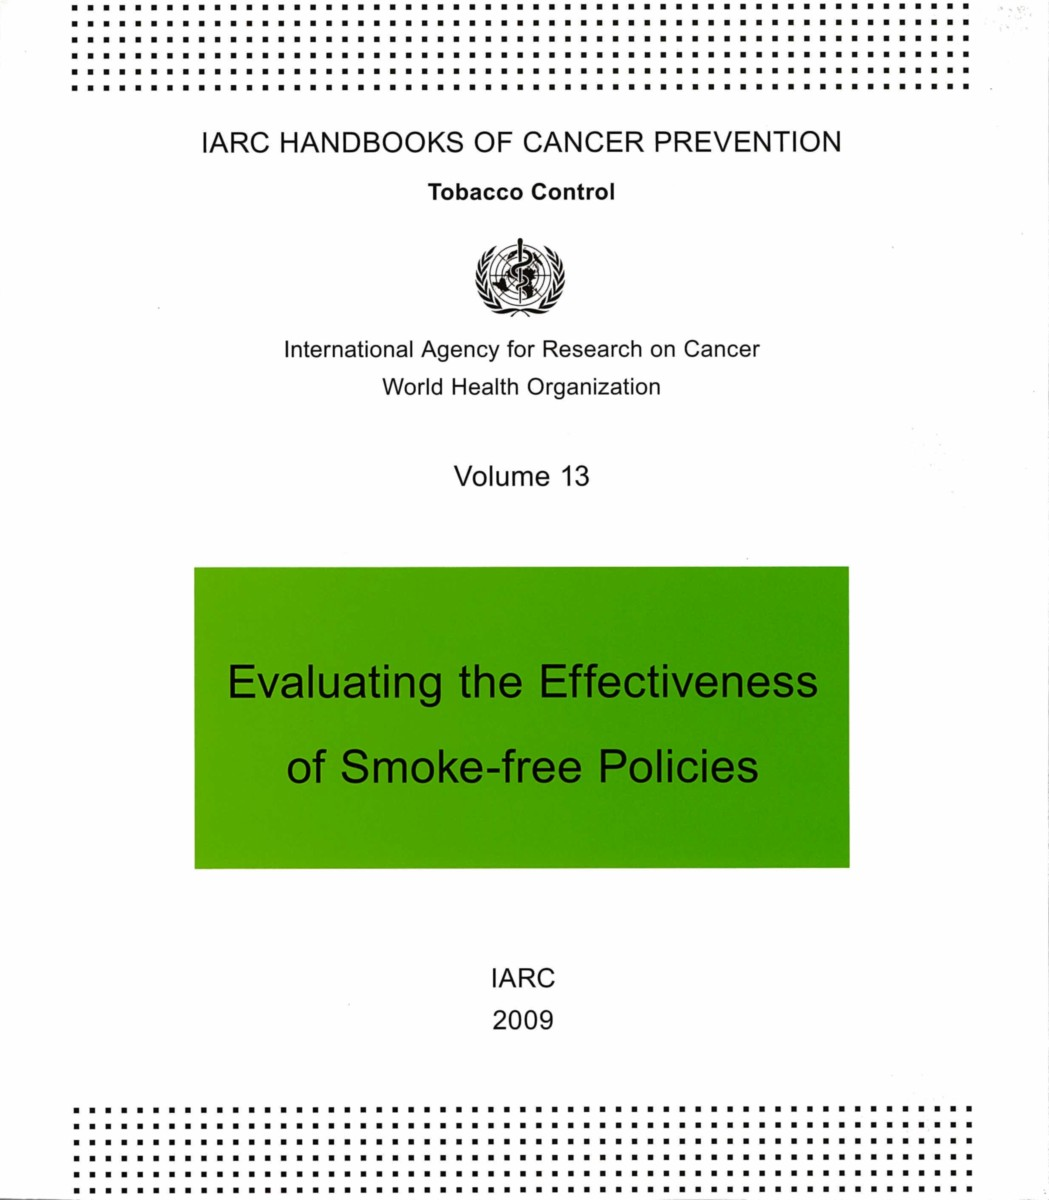 Evaluating the Effectiveness of Smoke-free Policies